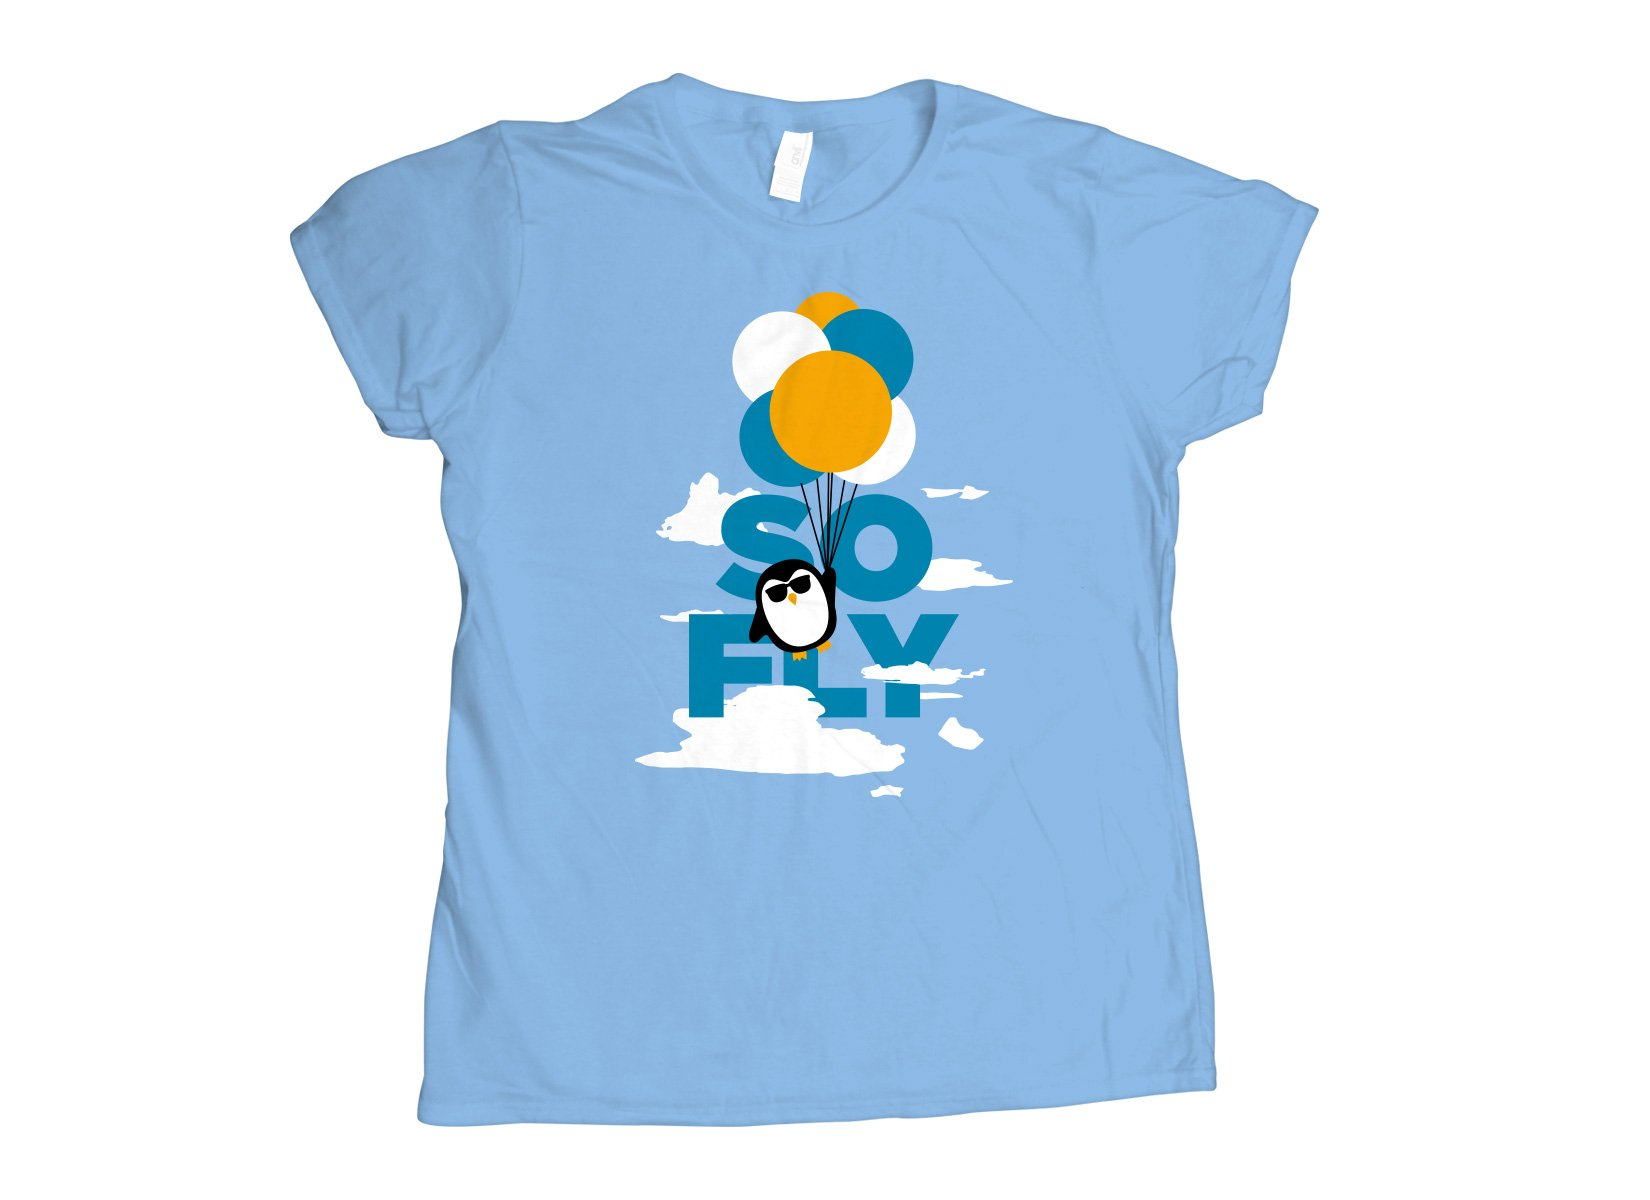 So Fly on Juniors T-Shirt